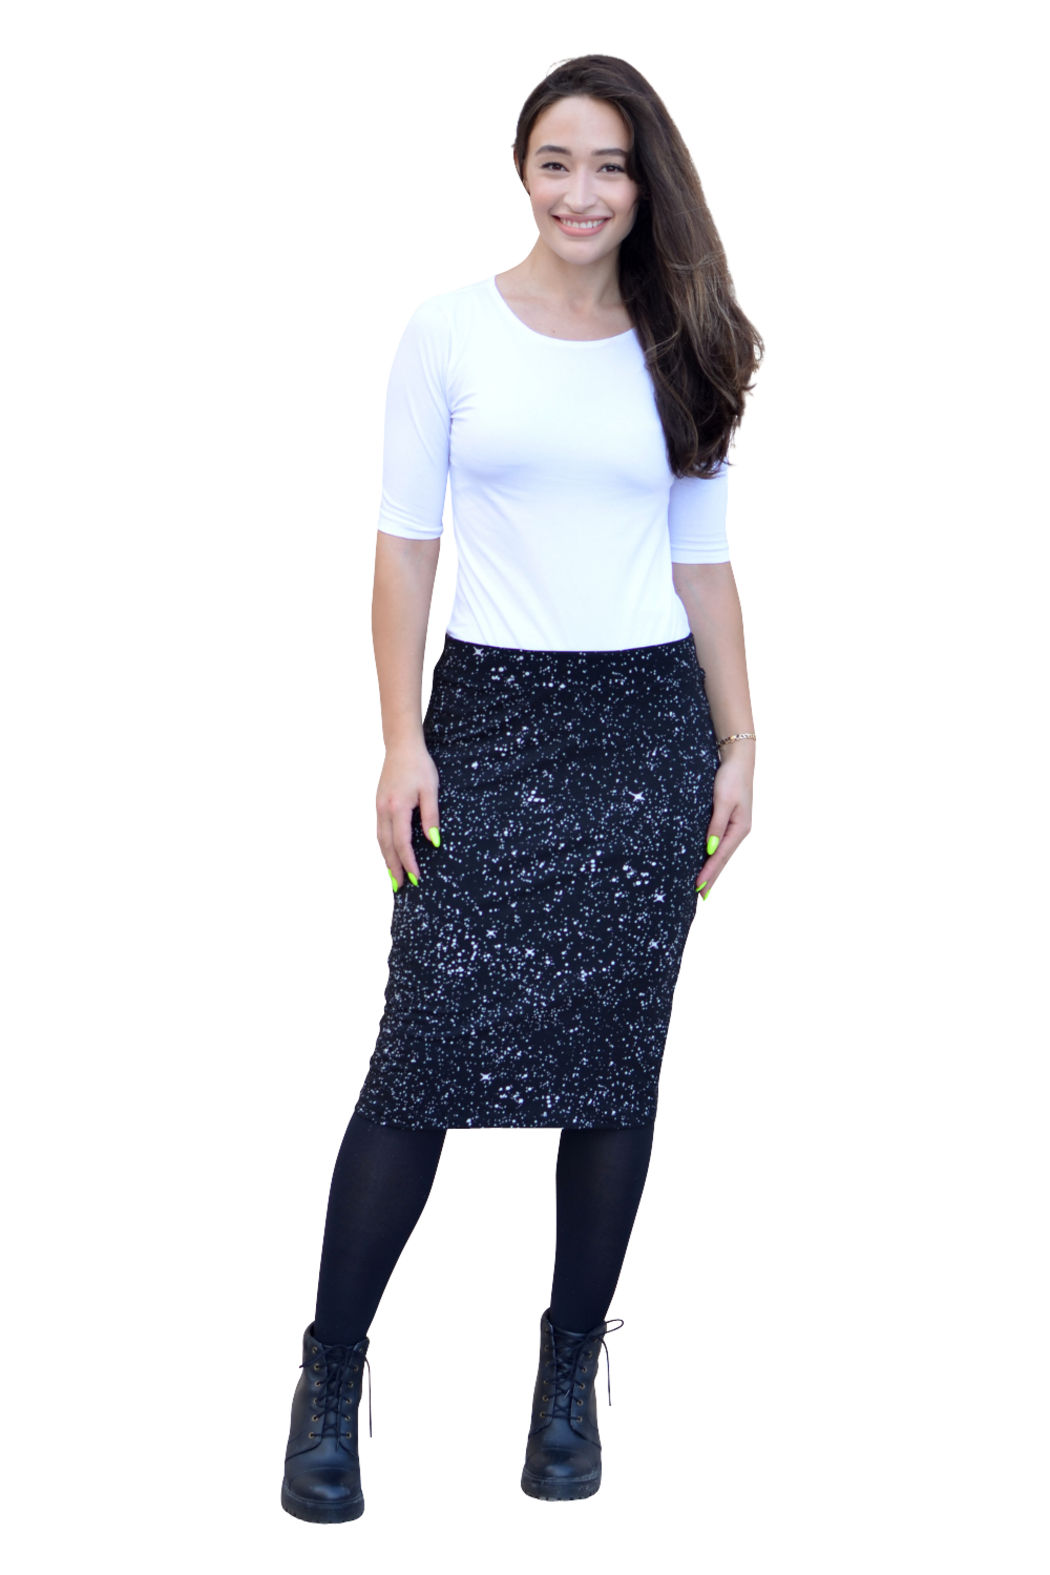 Kosher Casual Knee-length Pencil Skirt Fitted in Cotton Lycra - Printed - Main Image